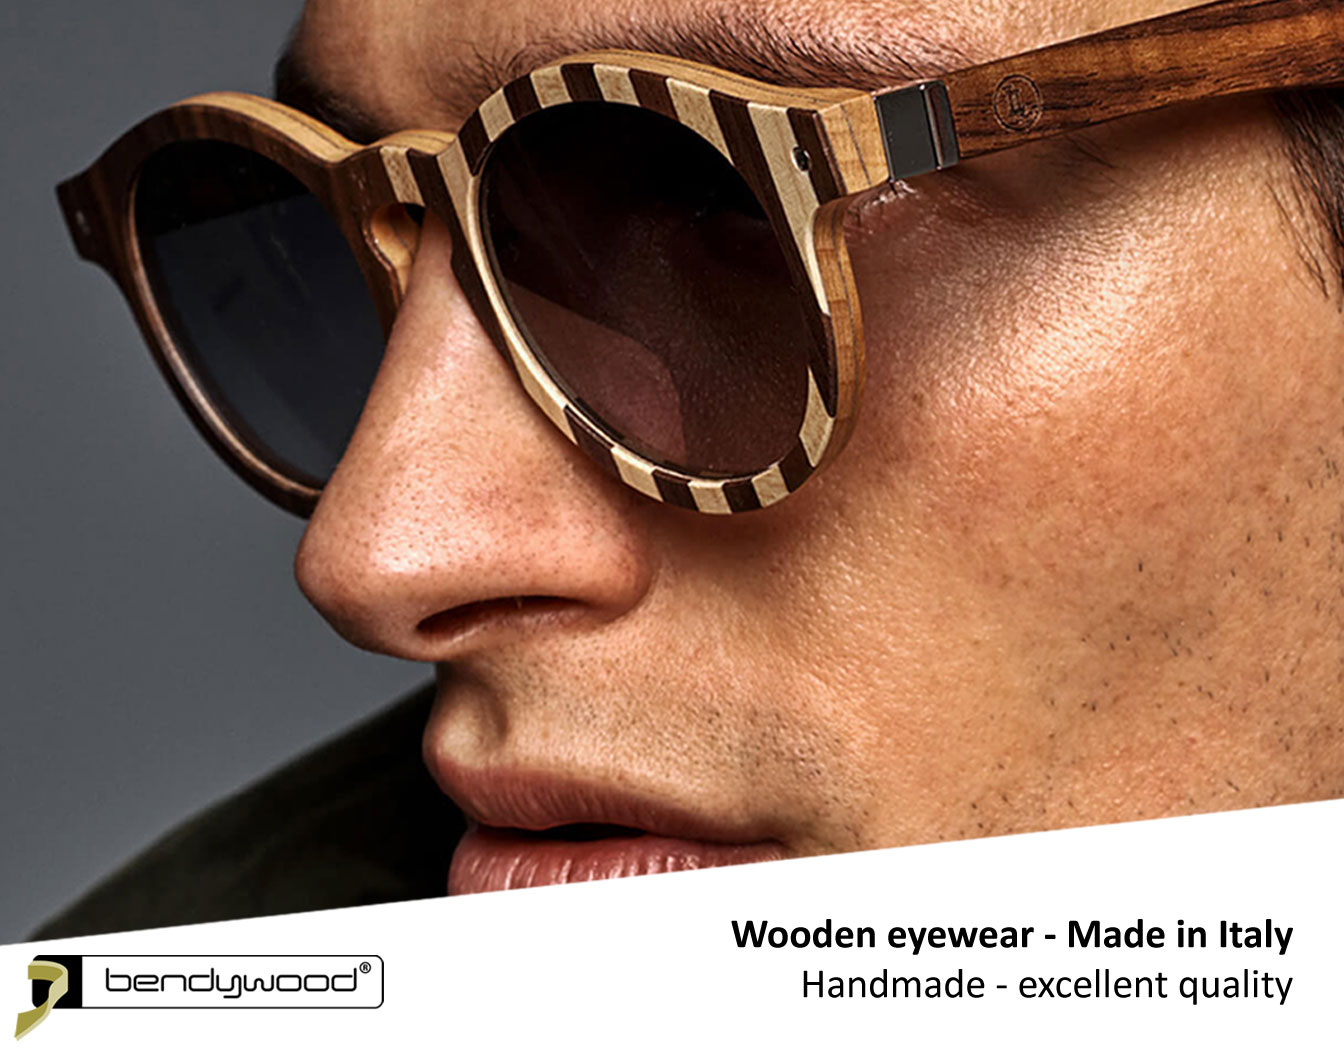 Bending wood Bendywood® - Wooden eyewear - Made in Italy